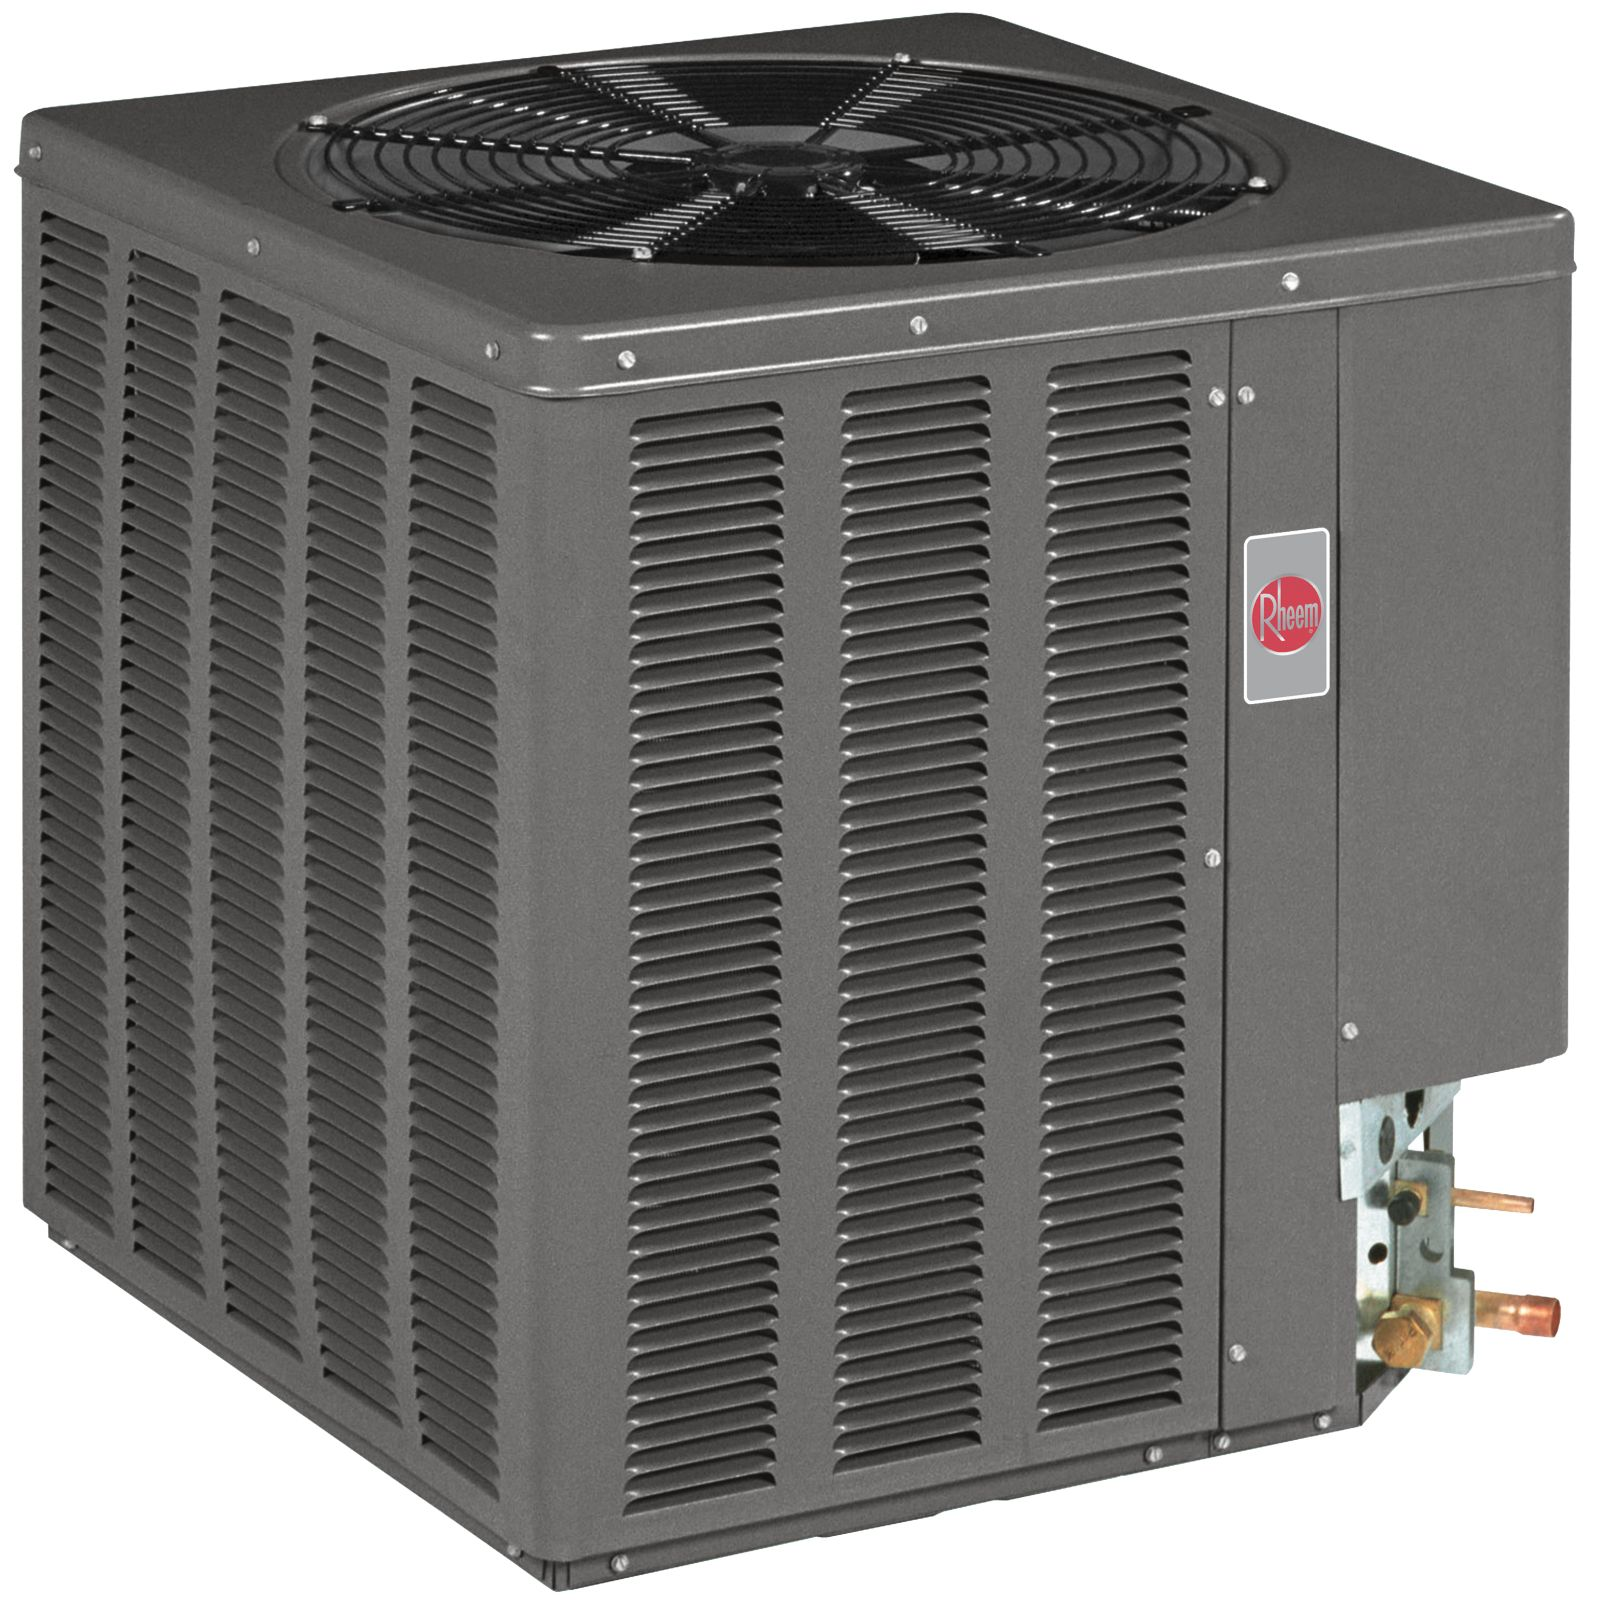 Rheem 13AJA36A01757 - Value Series 3 Ton, 13 SEER, R22 Air